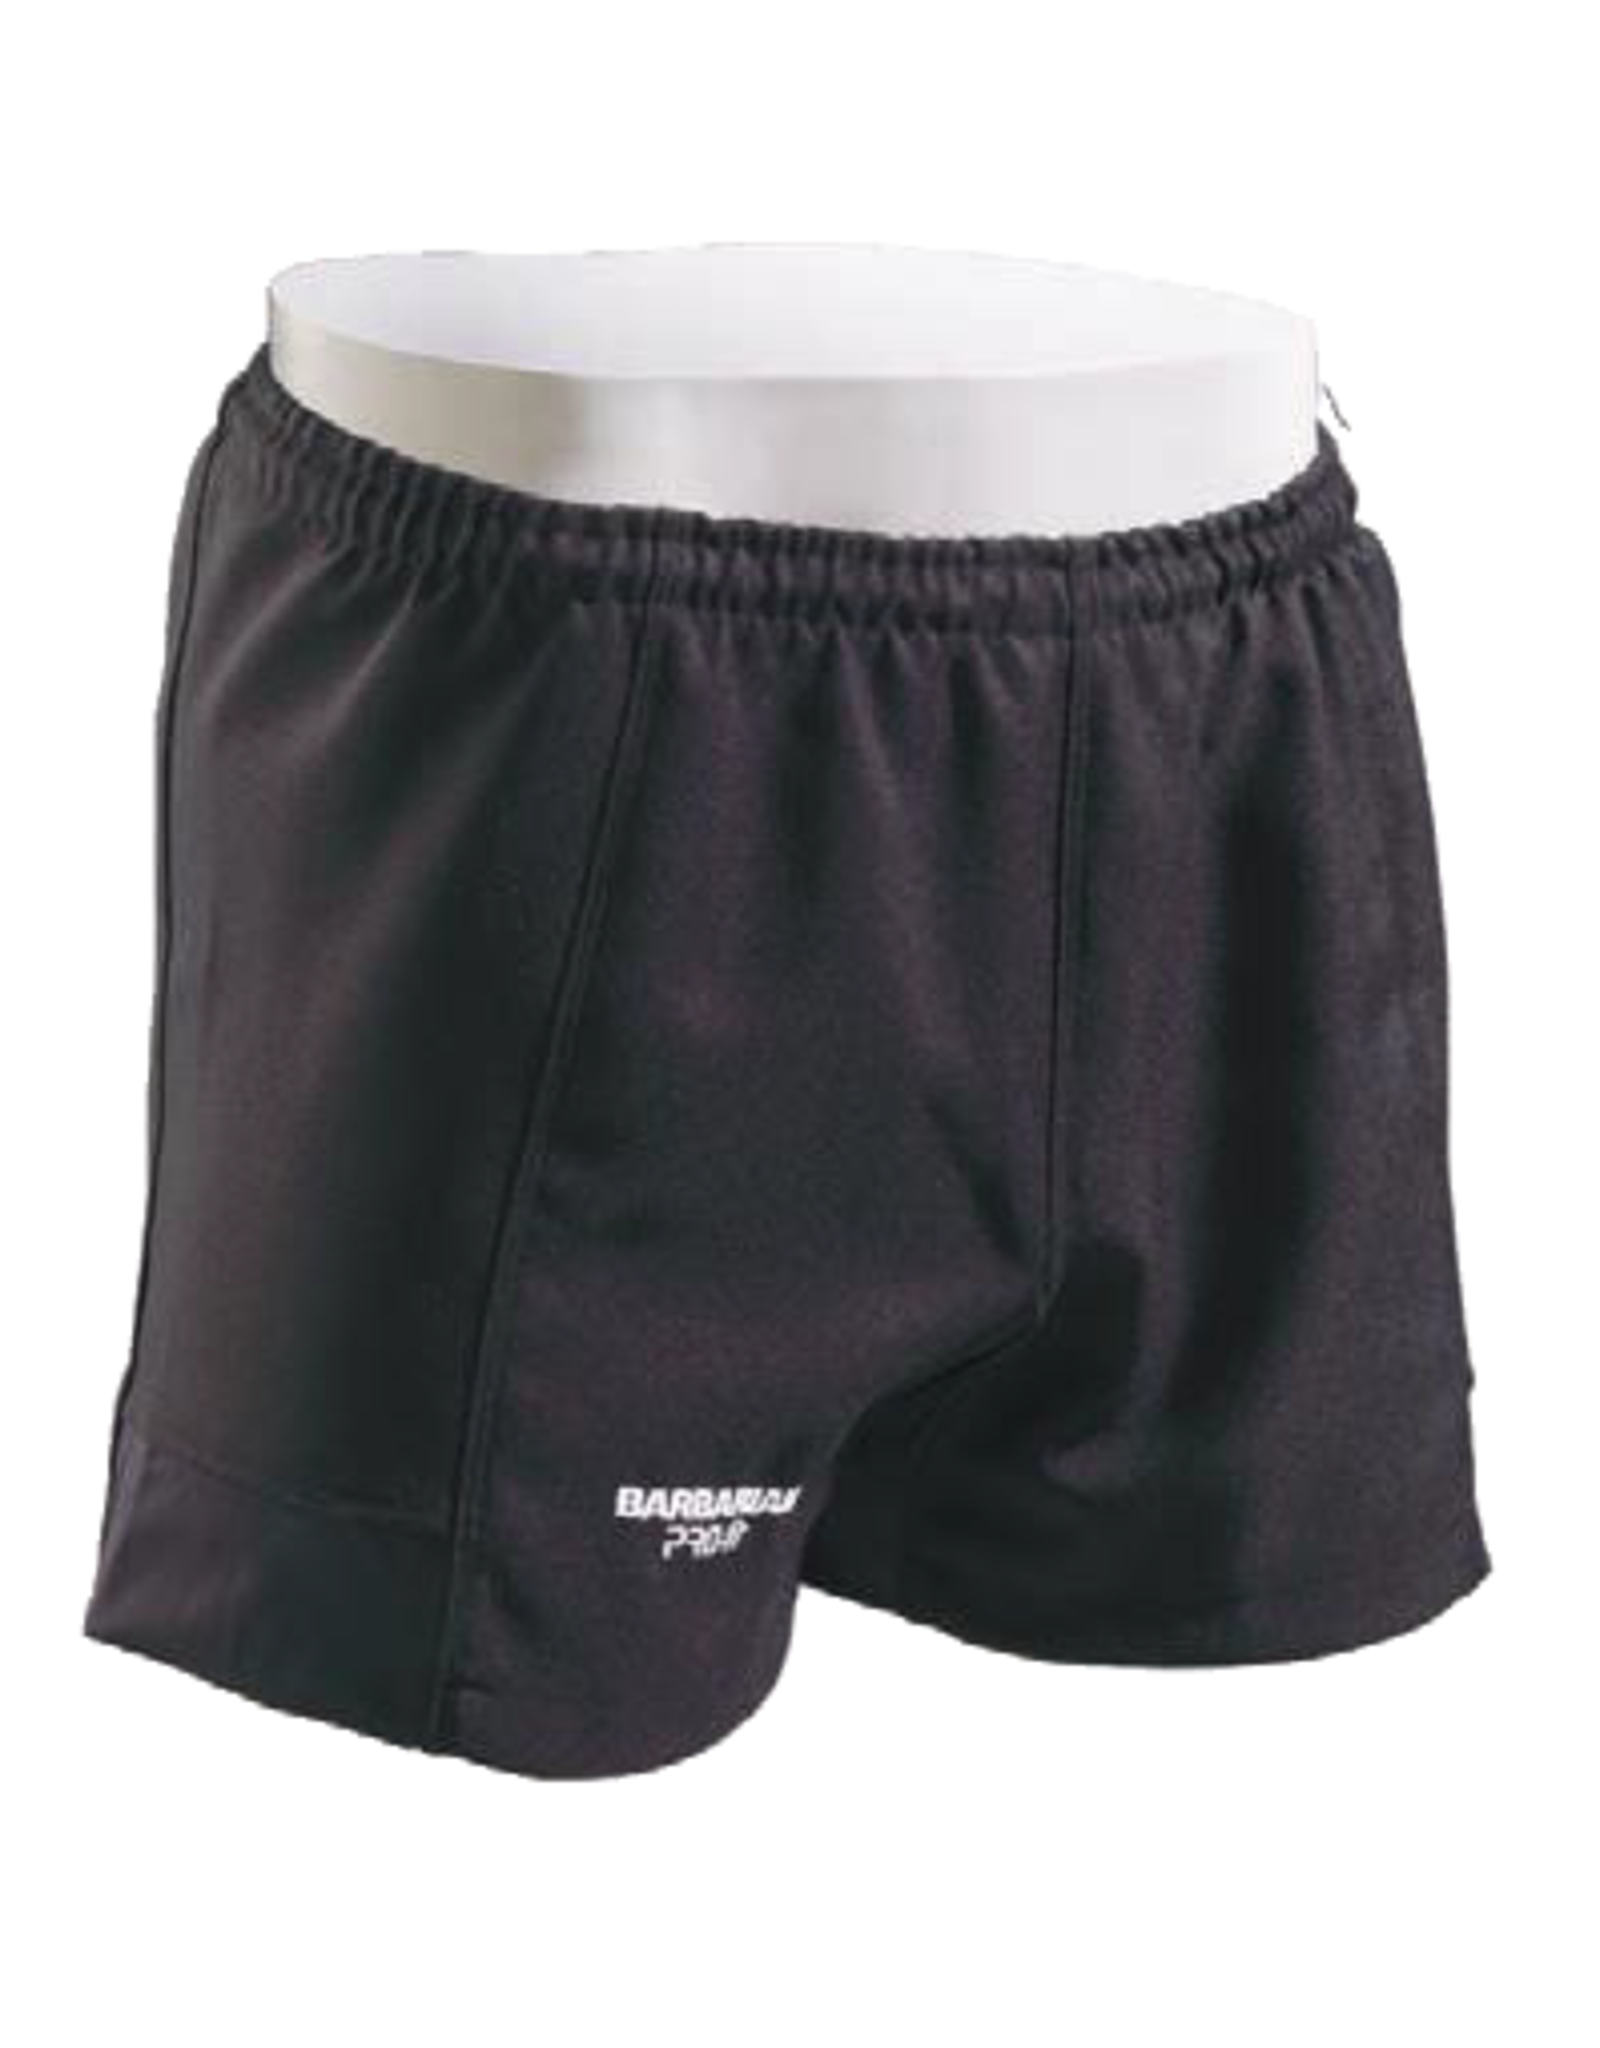 BARBARIAN PRO FIT RUGBY SHORTS